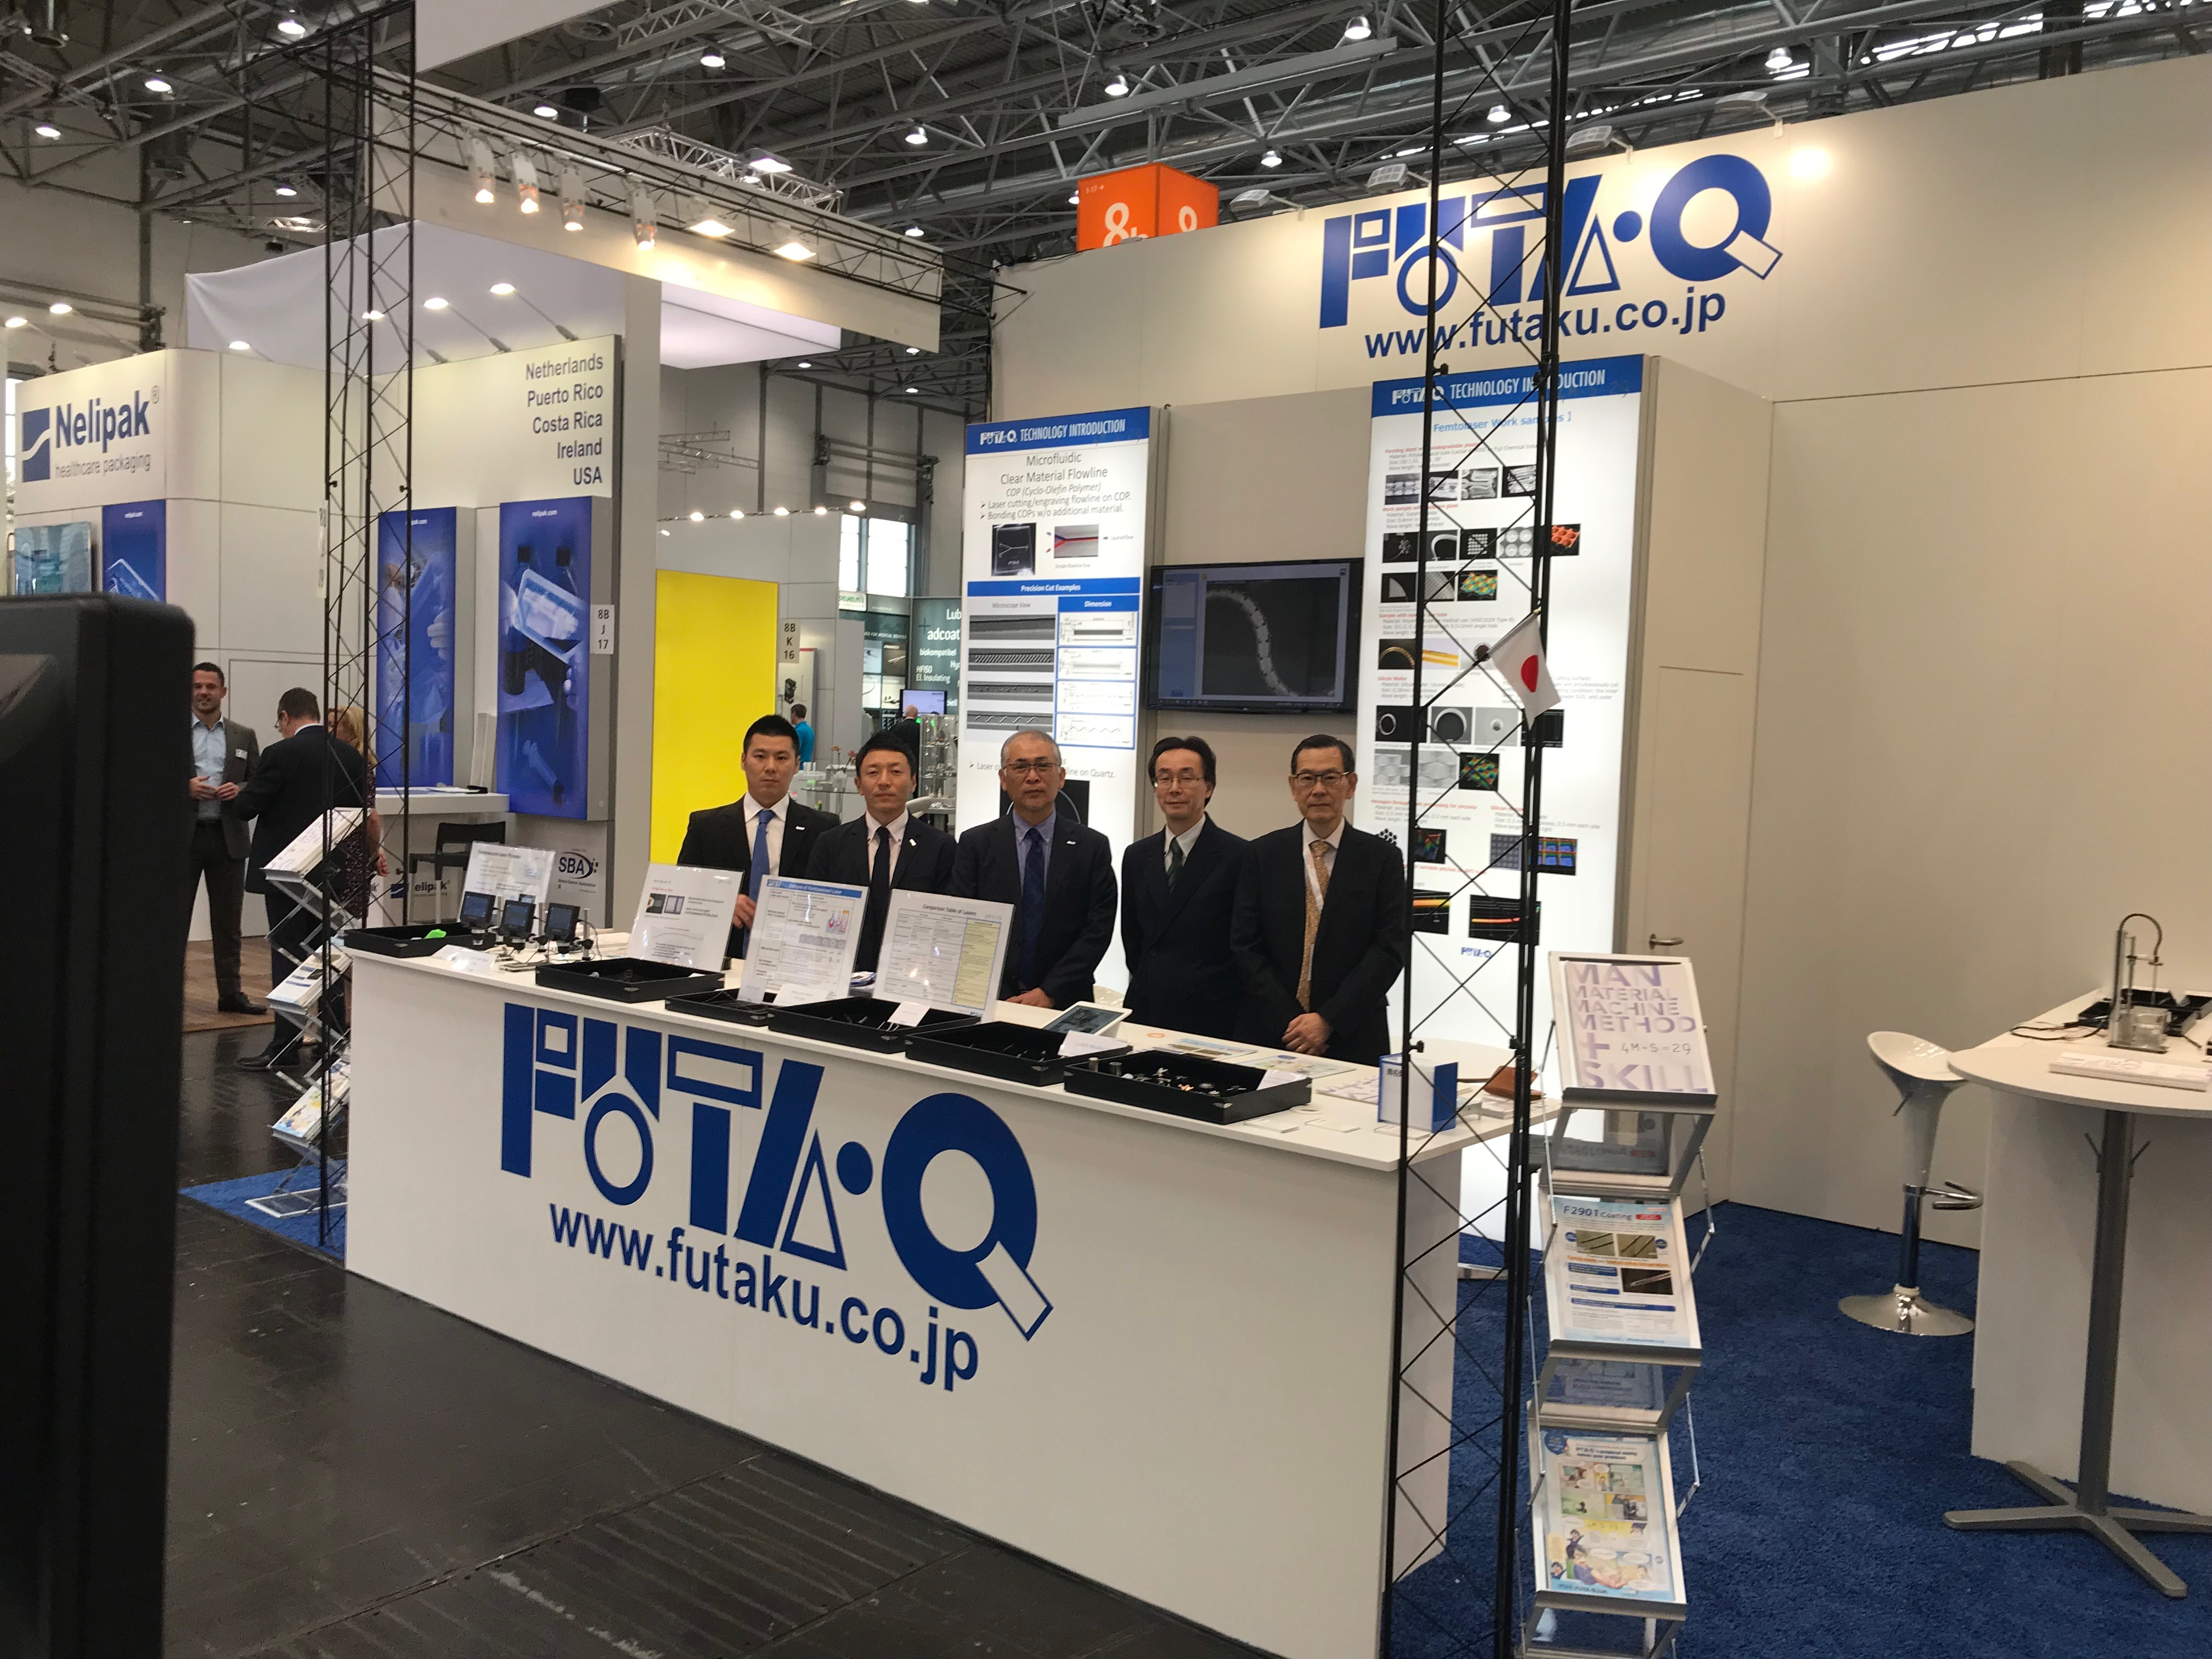 Thank you for visiting our booth at Difficult Manufacturing Technology Show